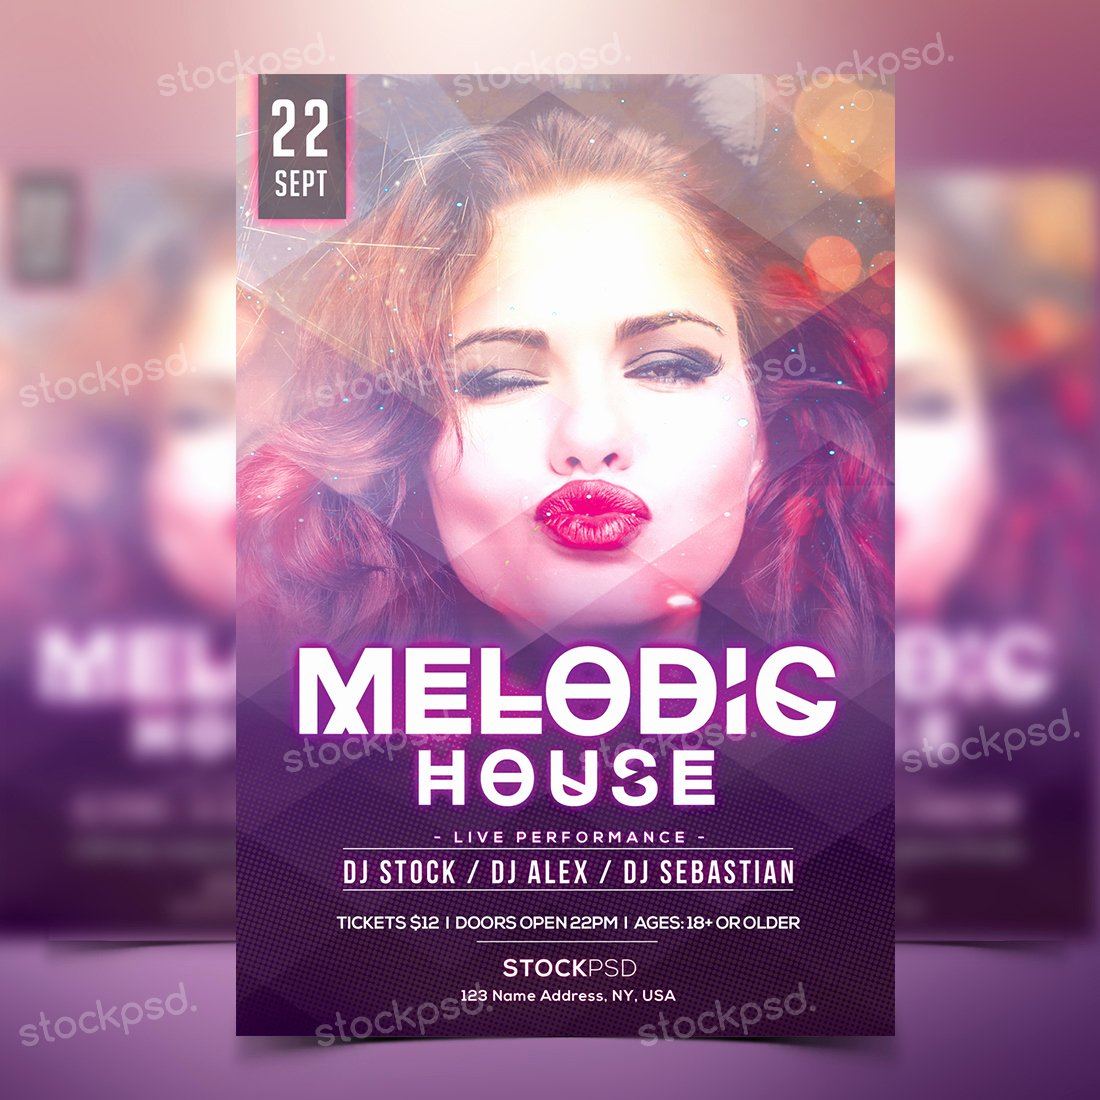 Party Flyer Template Free Elegant Melodic House Free Party Psd Flyer Template Stockpsd